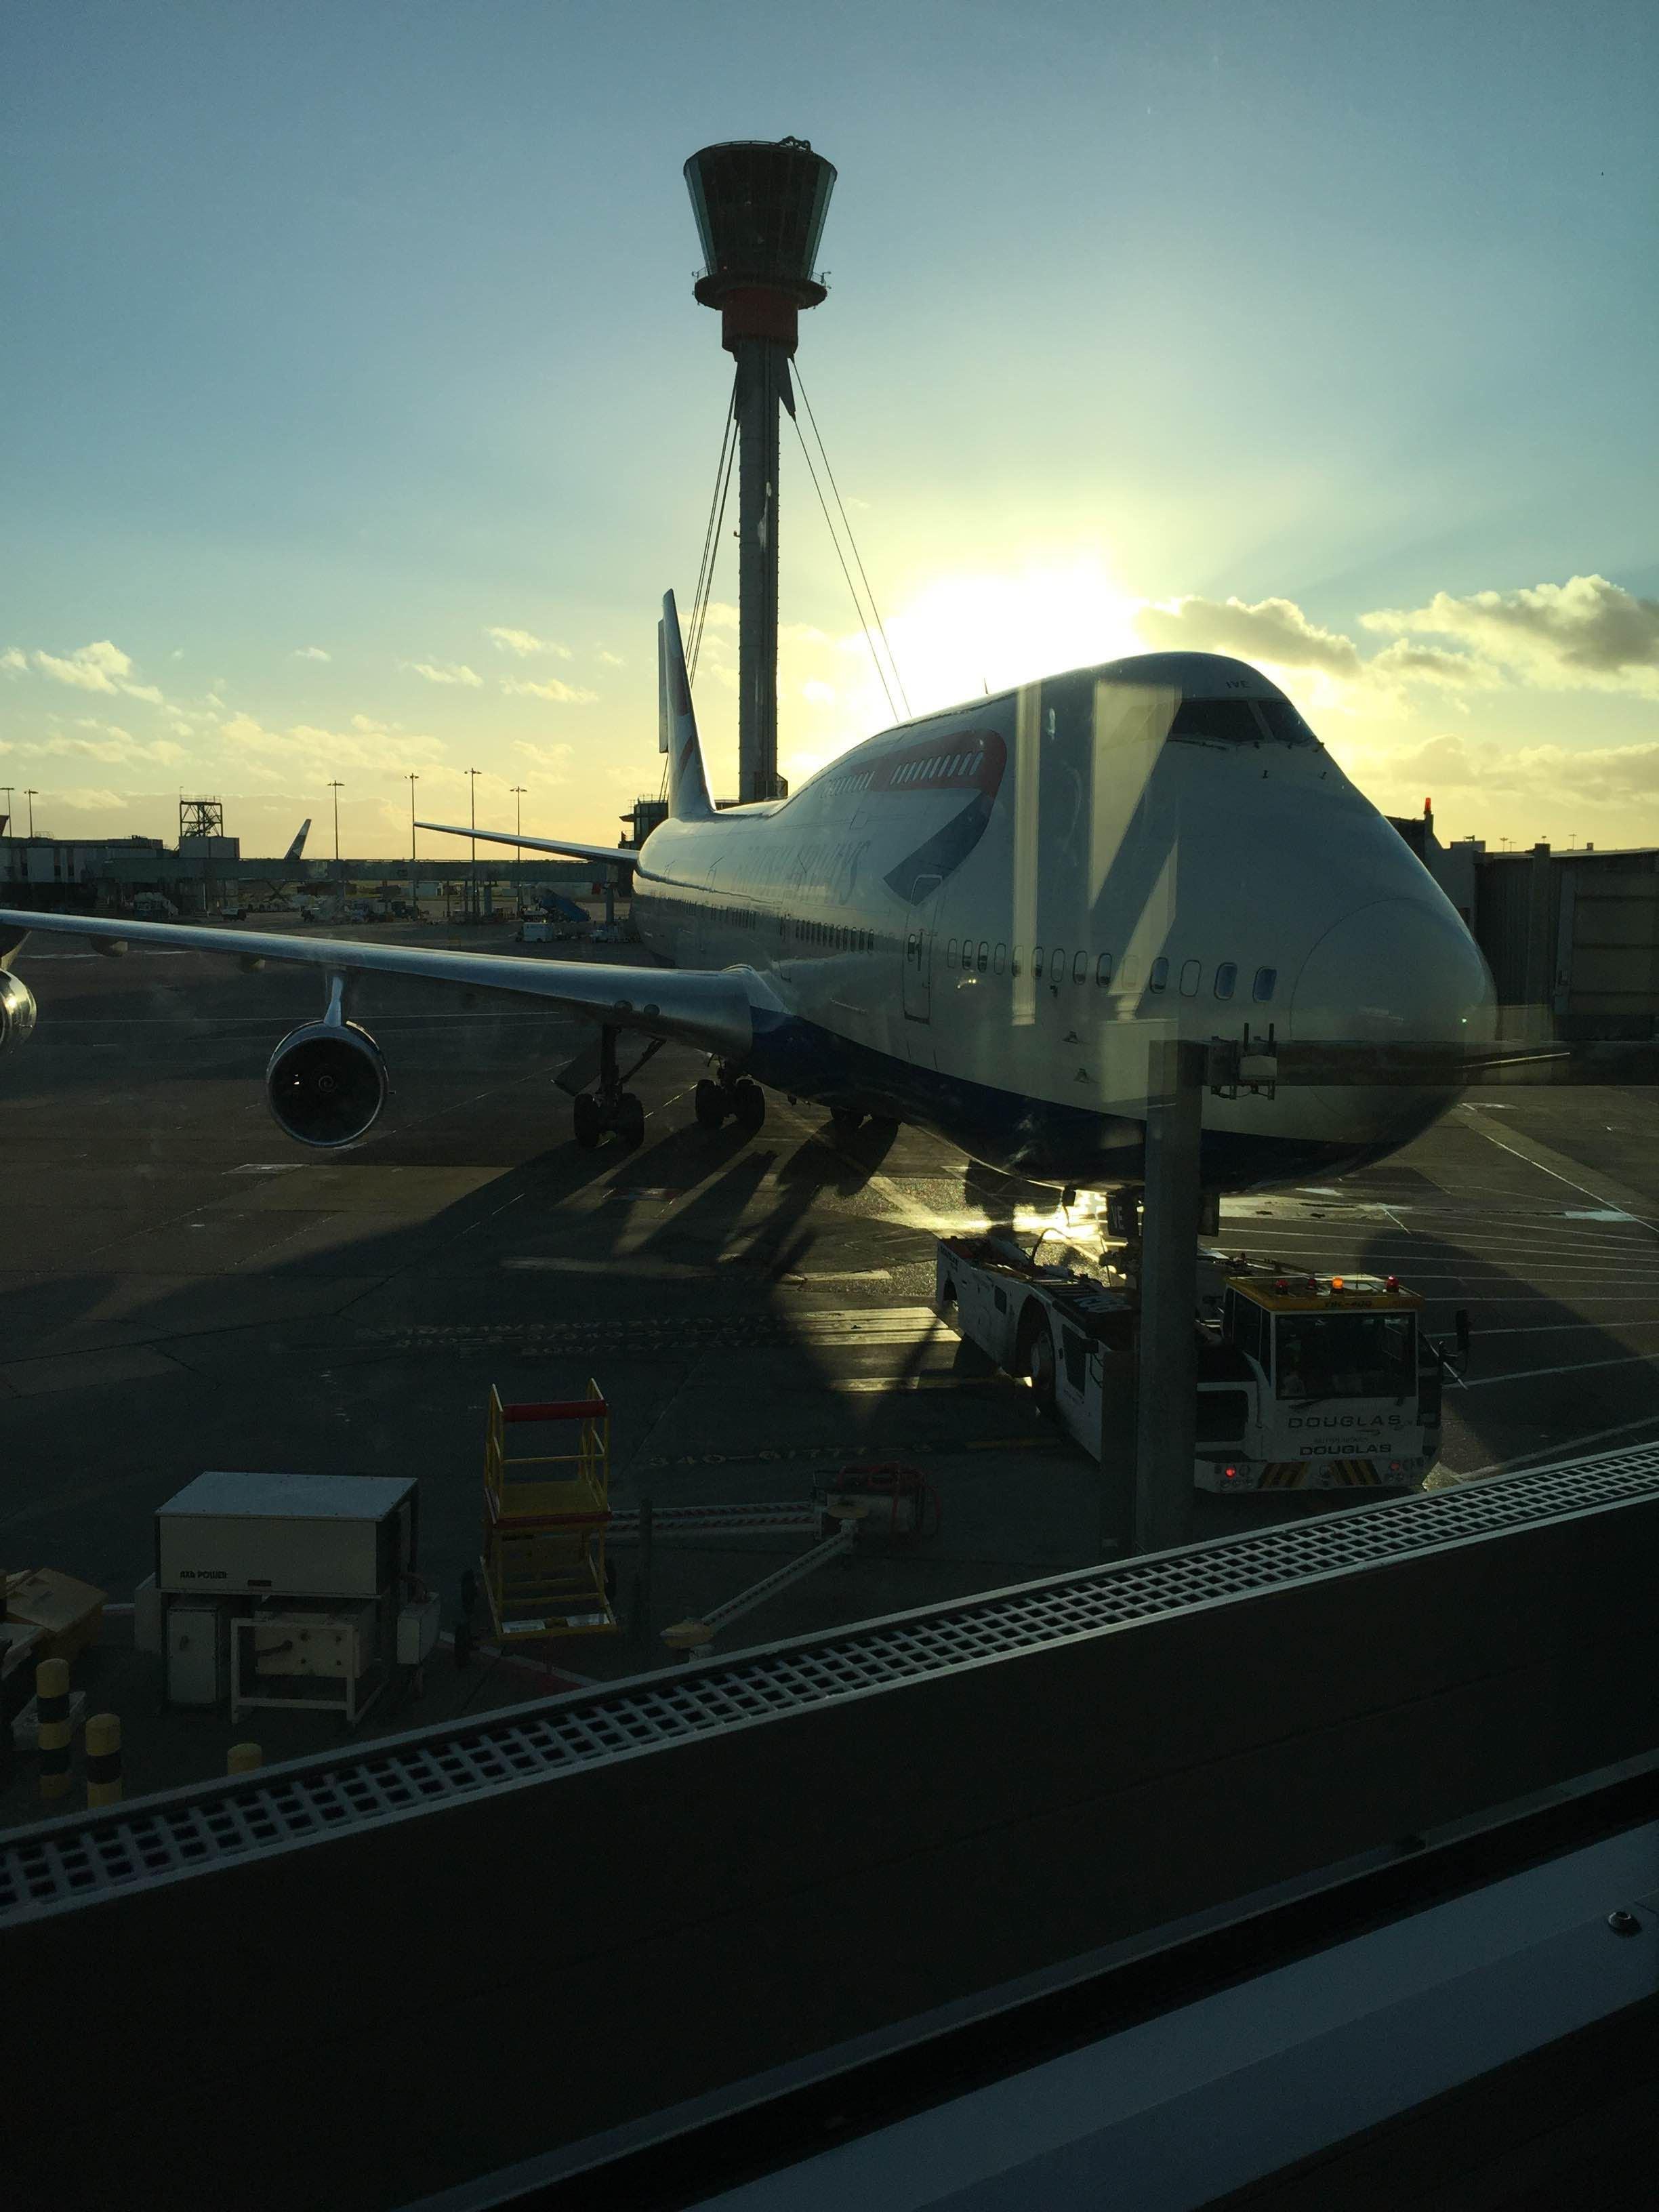 Anochecer en Aeropuerto de Londres - Heathrow